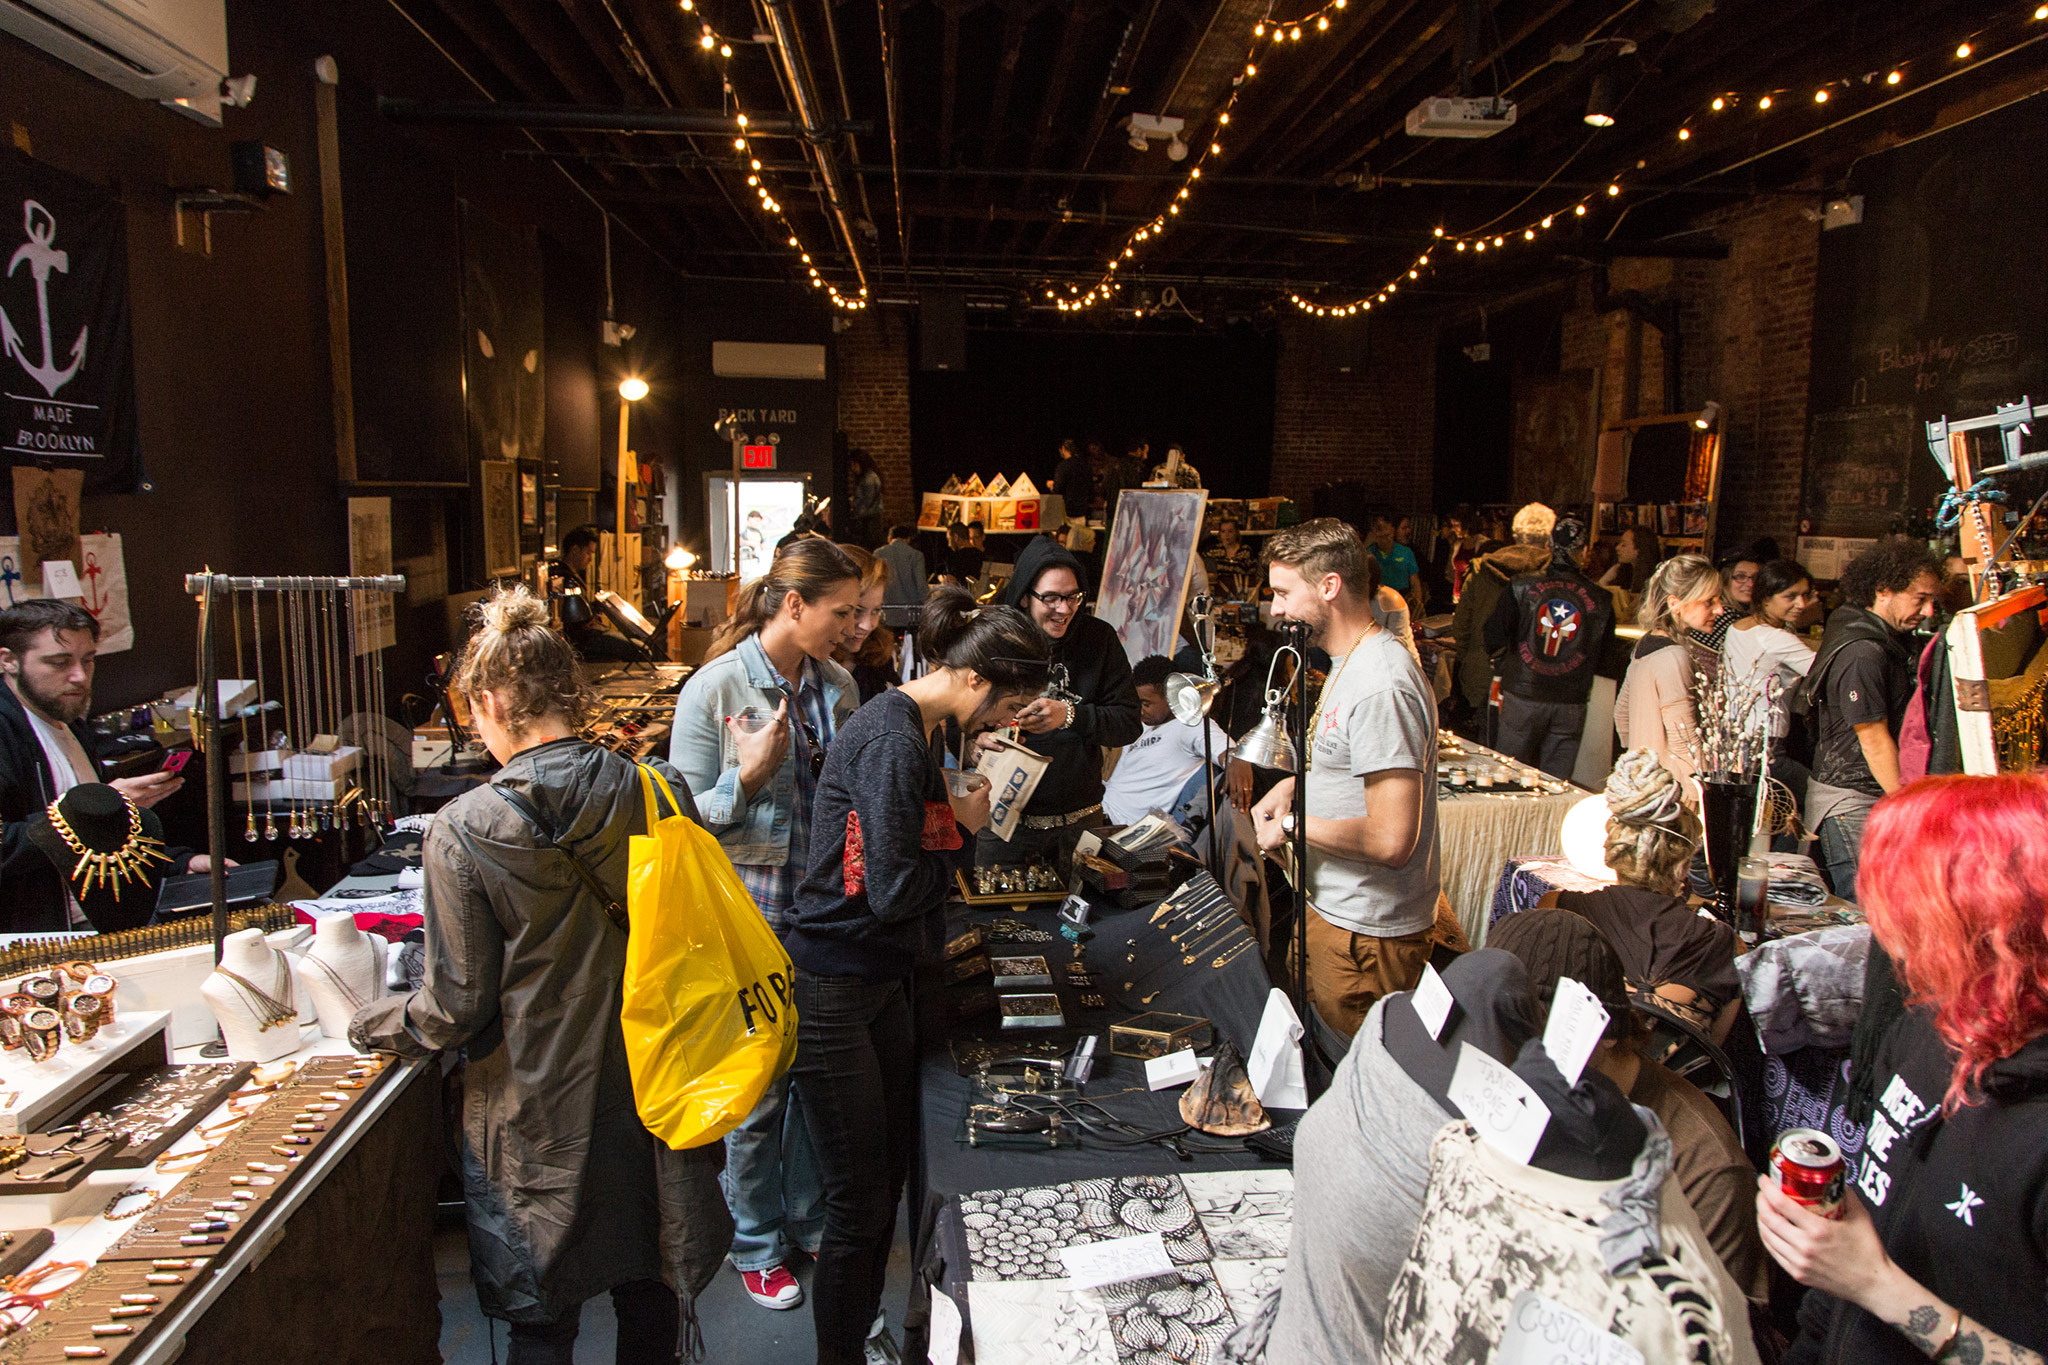 Check out these awesome photos from the Rock n' Shop flea market